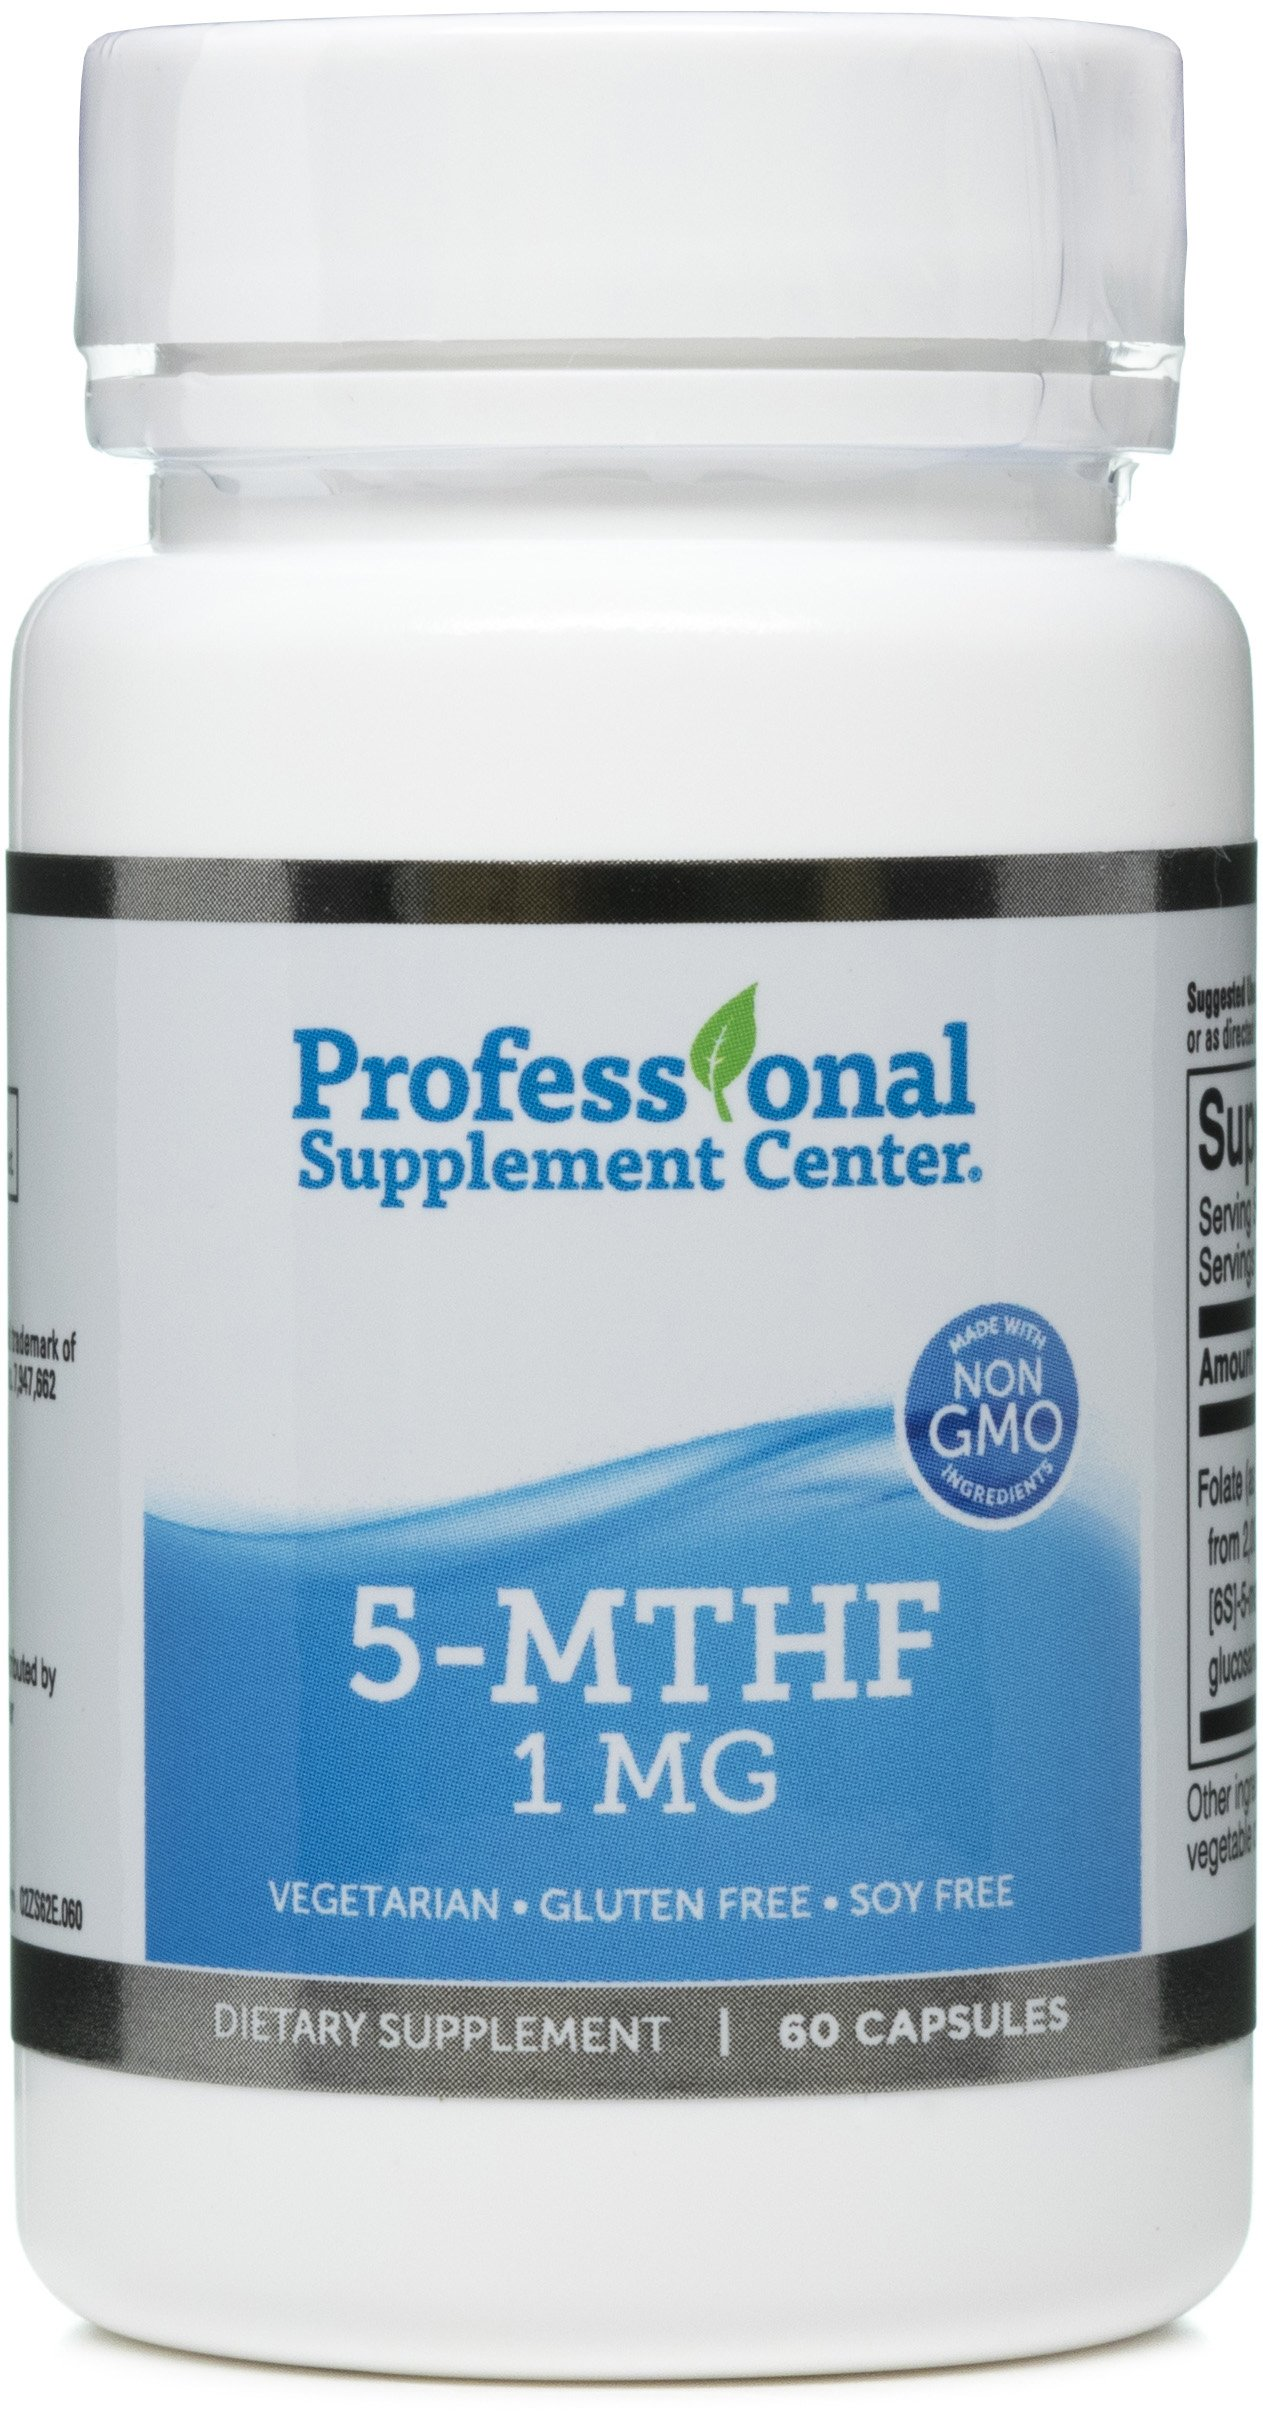 Professional Supplement Center - 5-MTHF 1 mg - 60 Capsules